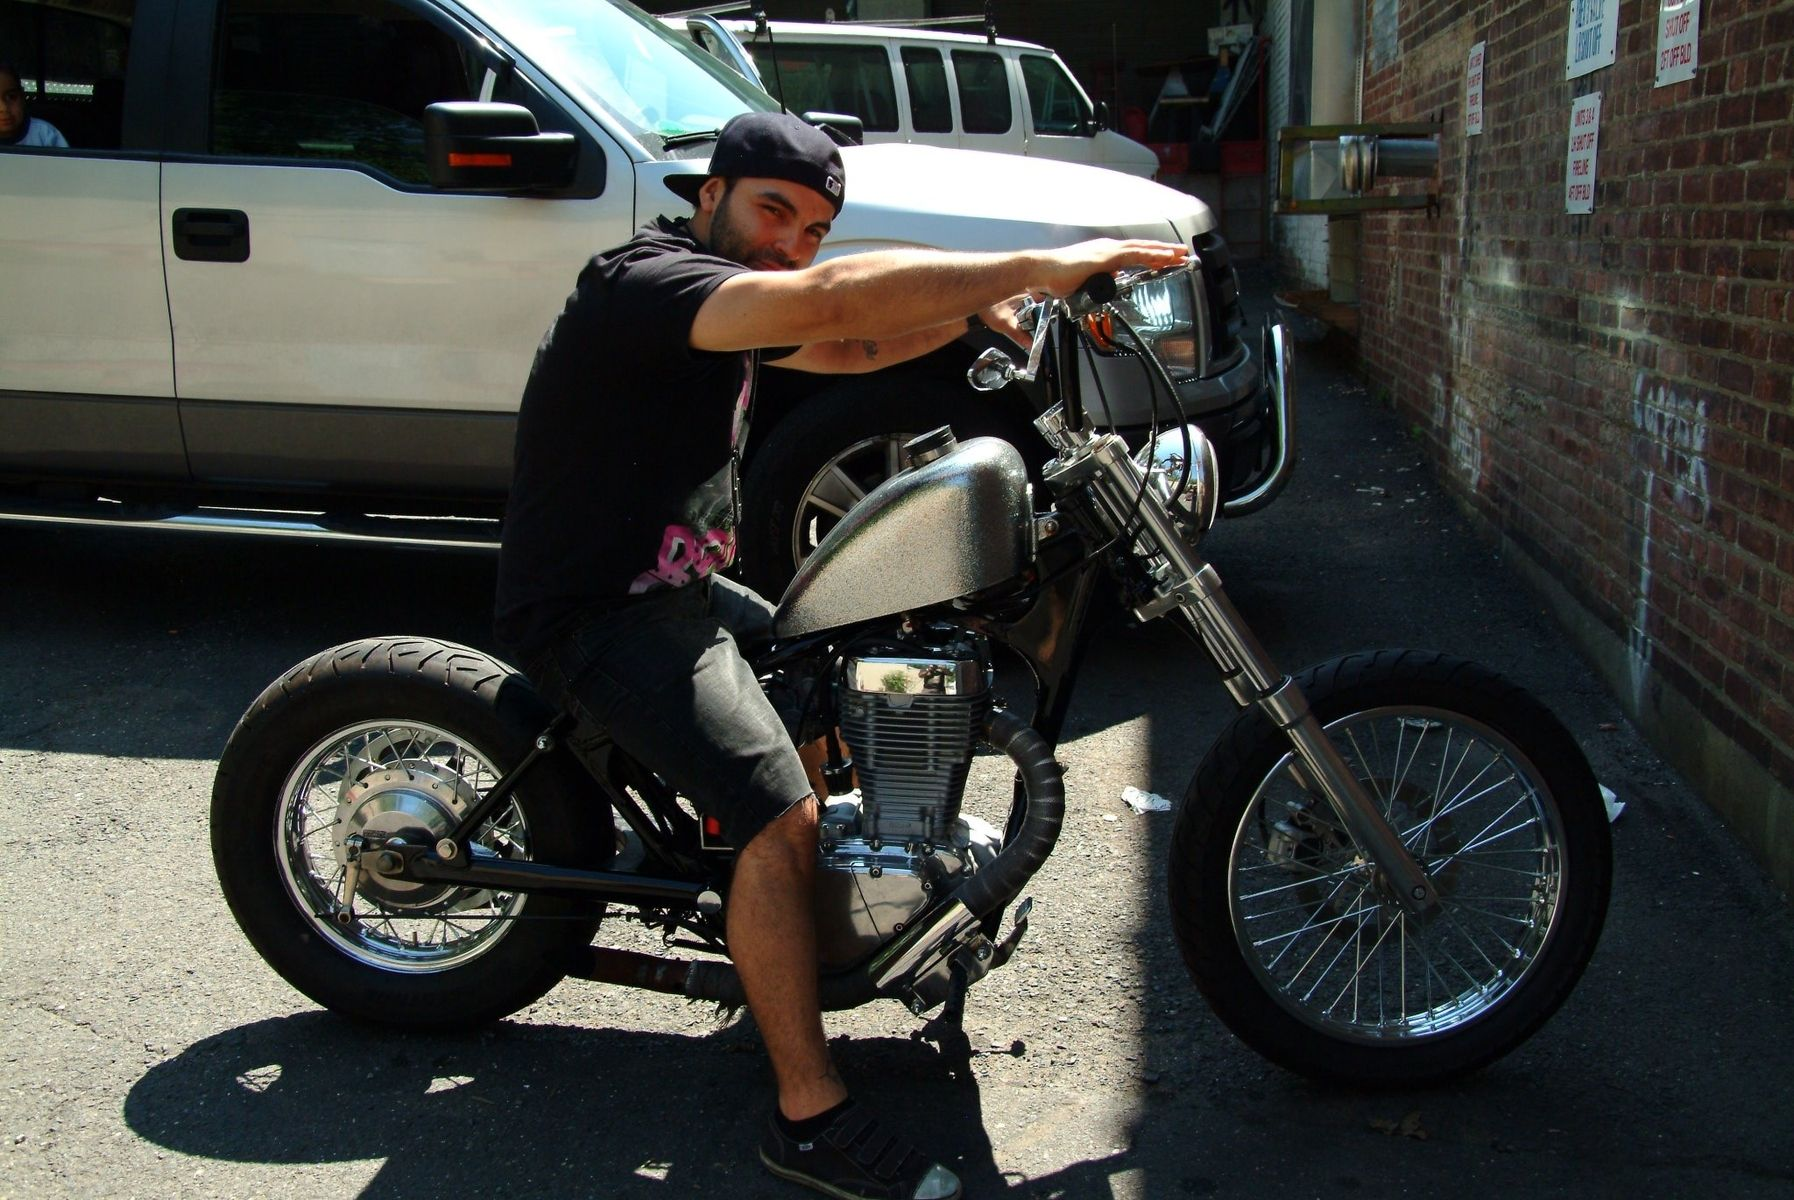 Hand Crafted 1986 Suzuki Savage Ls650 Custom Bobber by SteelDesign